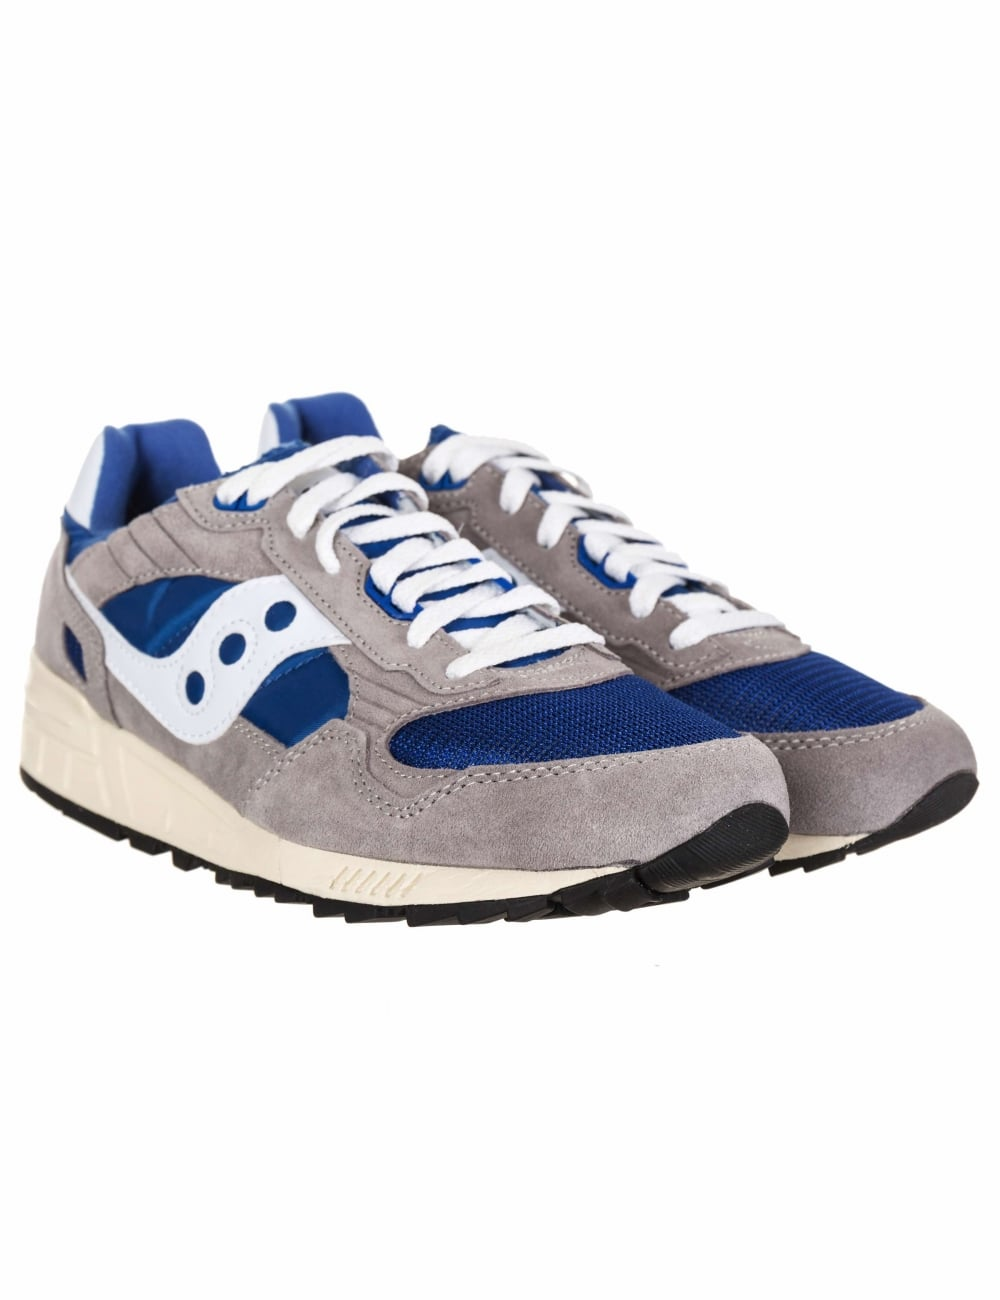 new concept 9a553 f6ff7 Shadow 5000 Trainers - Vintage Grey/Blue